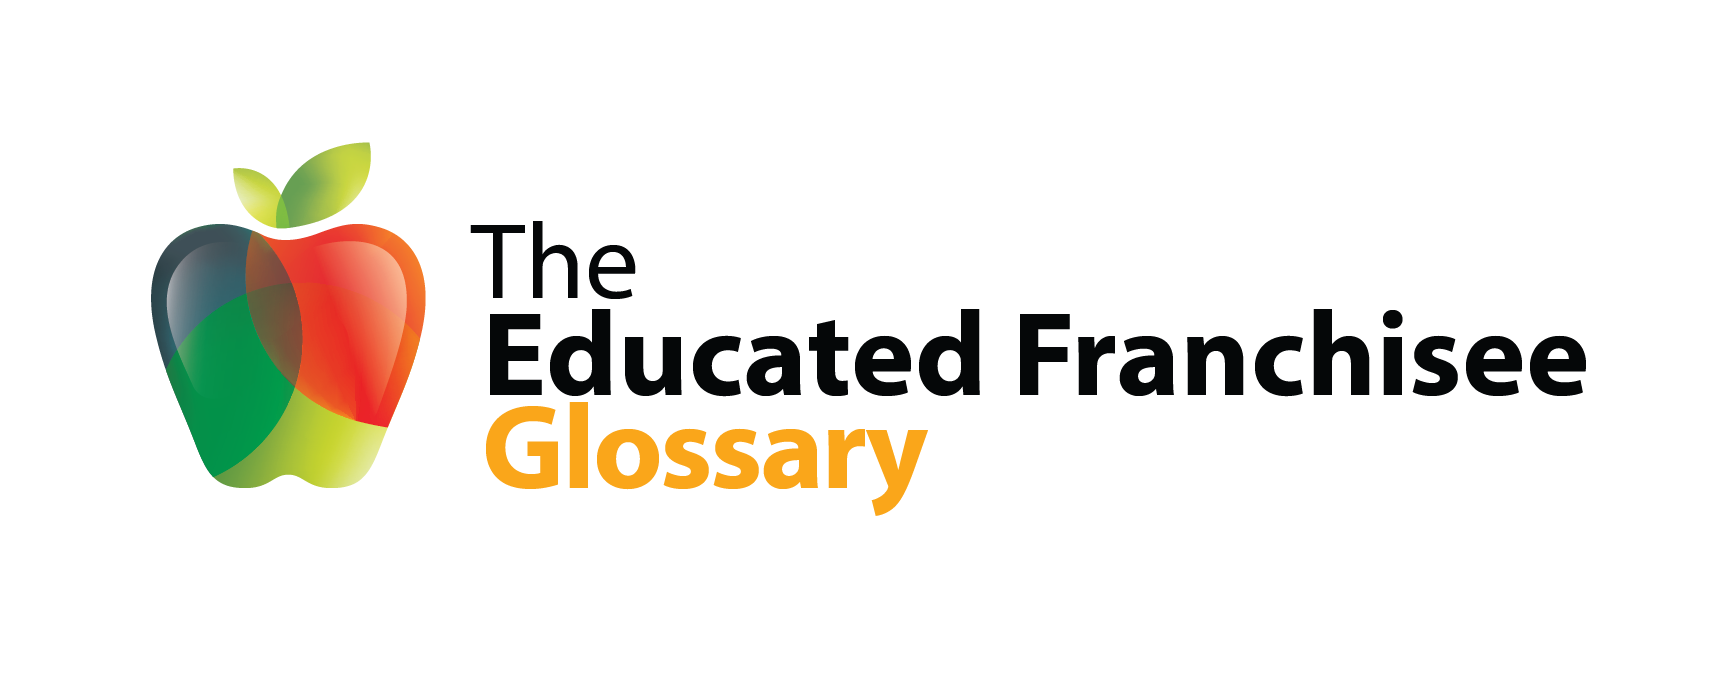 https://fddexchange.com/wp-content/uploads/2017/09/EF_Glossary.png